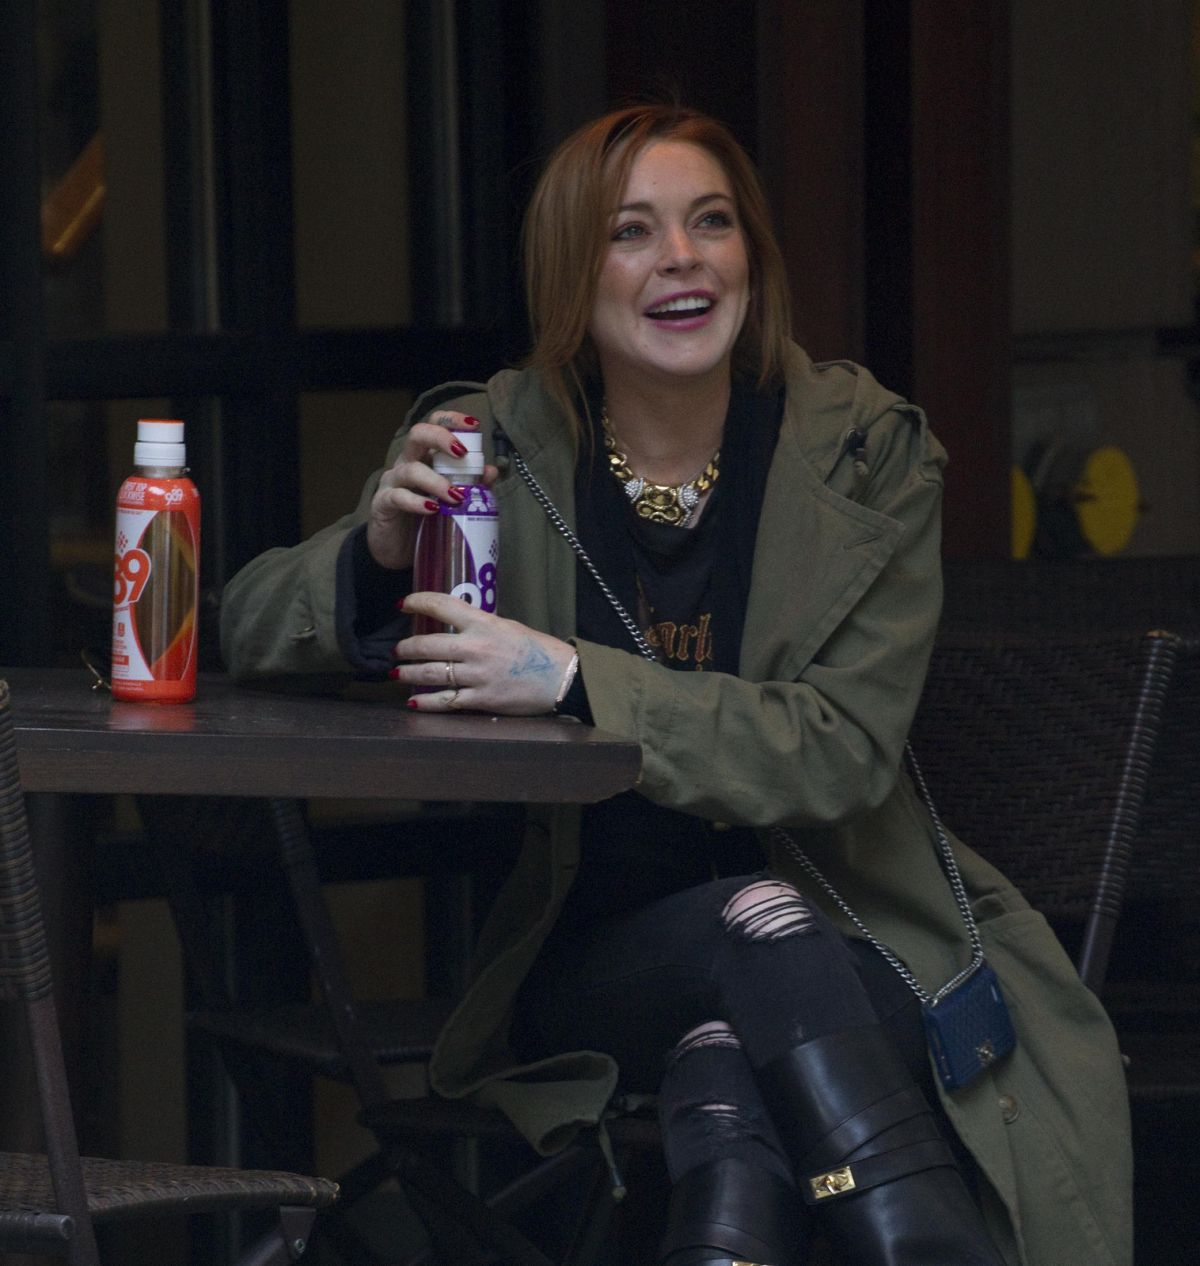 Lindsay Lohan Sitting At A Hotel In New York City